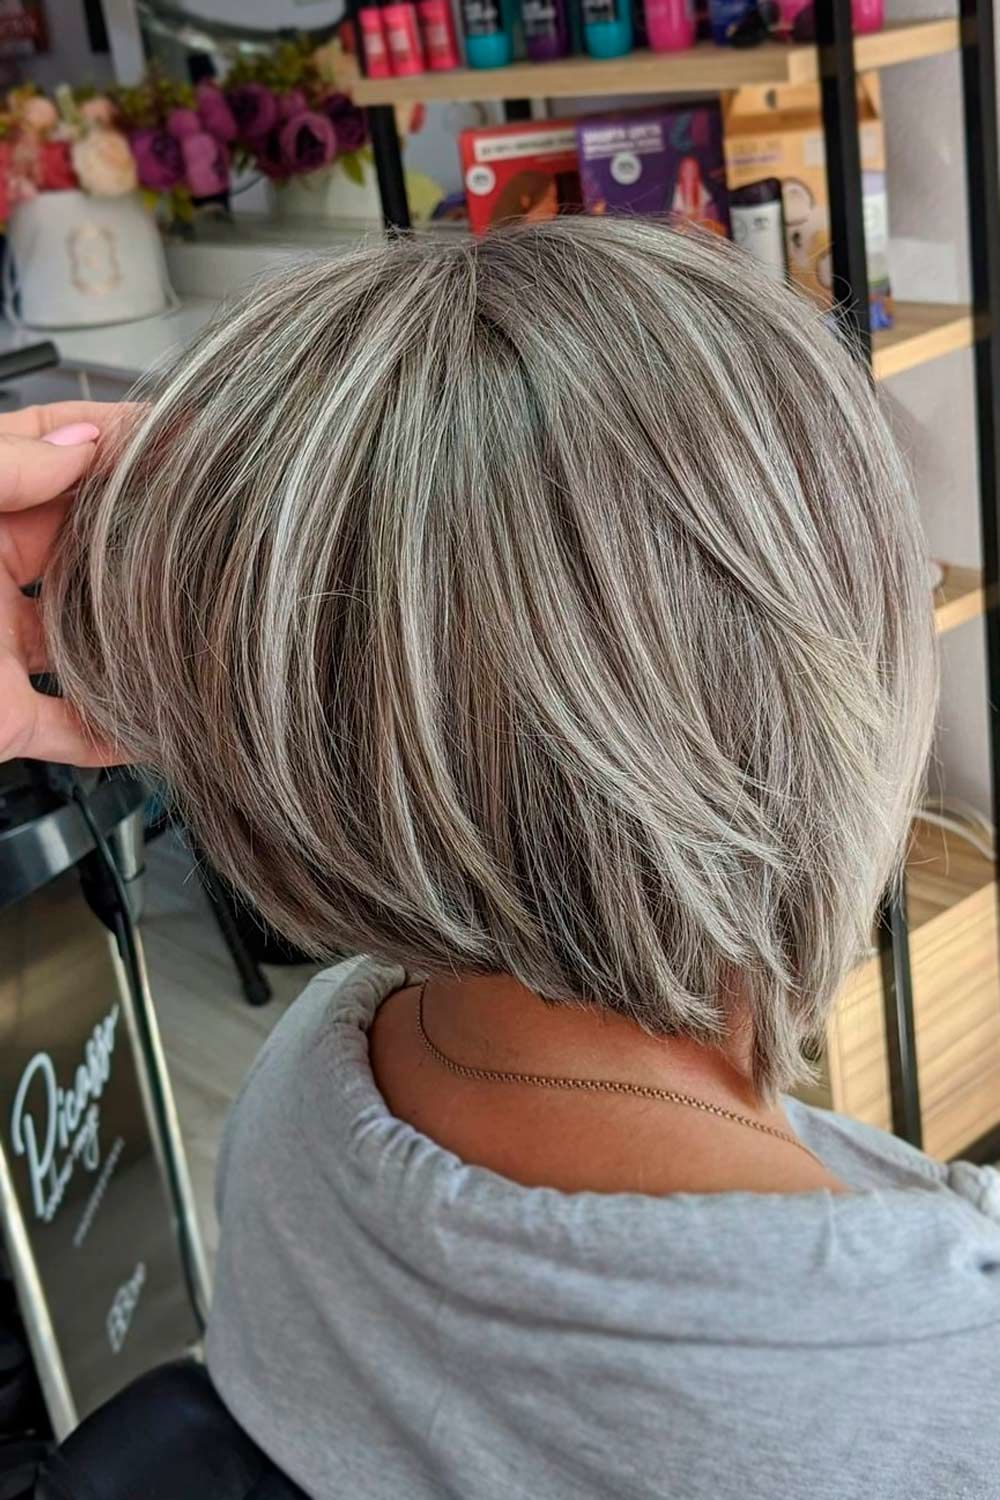 Ash Grey Highlights, hairstyle for 40 year olds, medium length hairstyles for women over 40, hairstyles for 40 years old